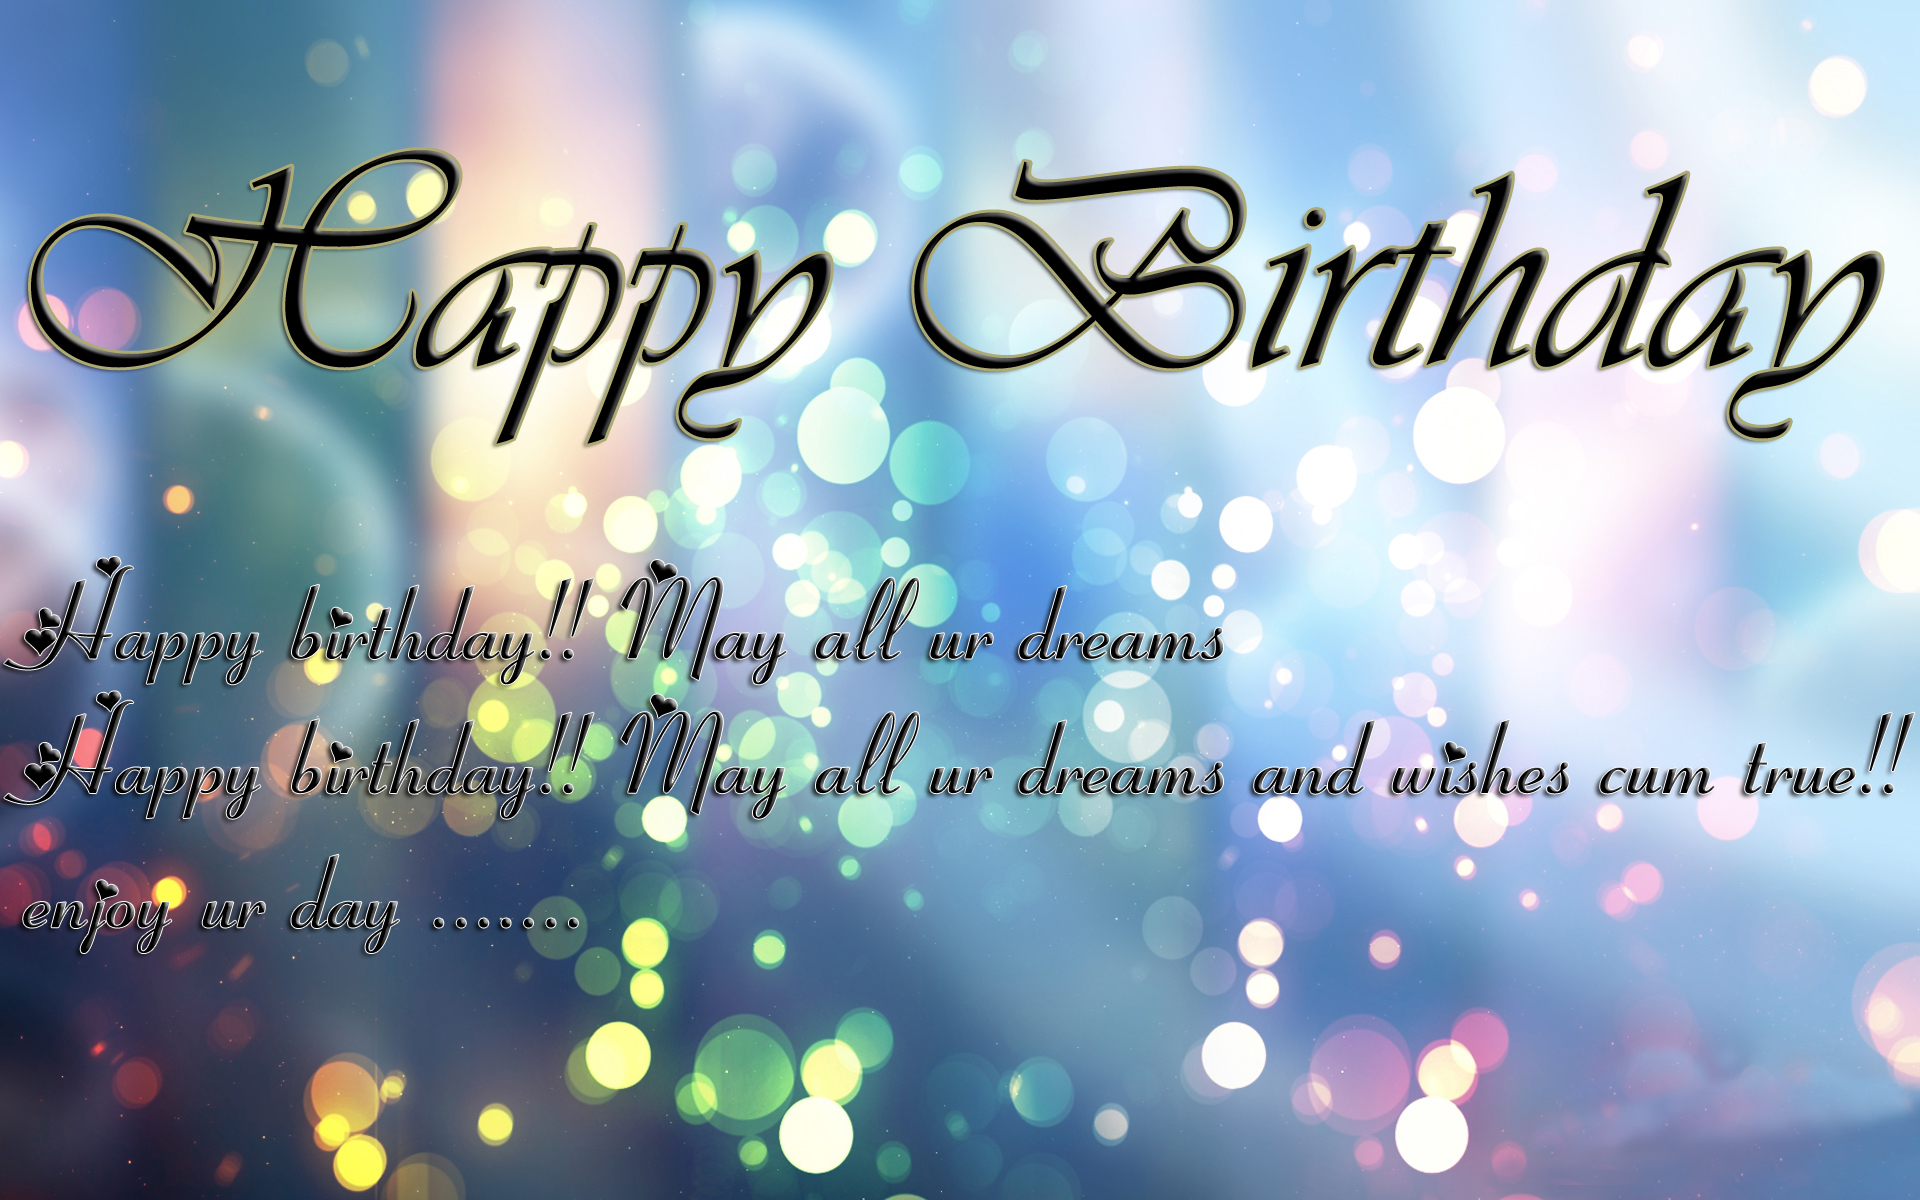 happy birthday message wallpaper ; Happy-birthday-wishes-for-lover-7